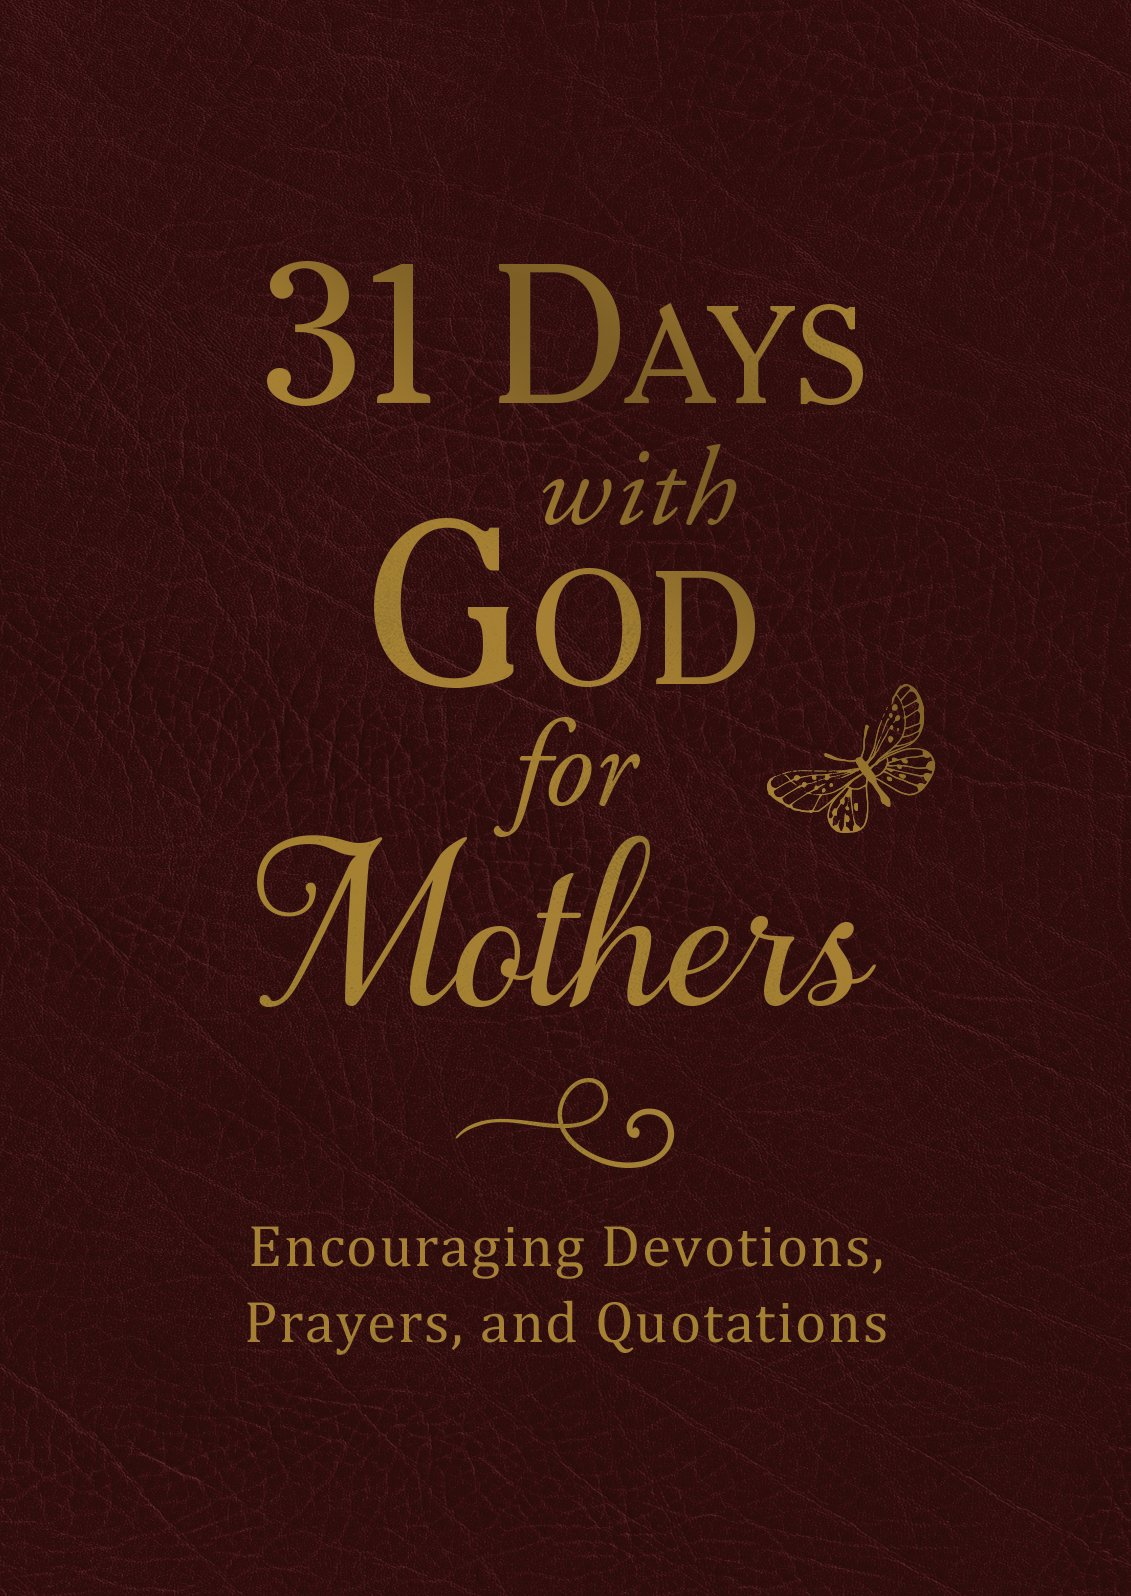 31 Days with God for Mothers (Burgundy): Encouraging Devotions, Prayers, and Quotations pdf